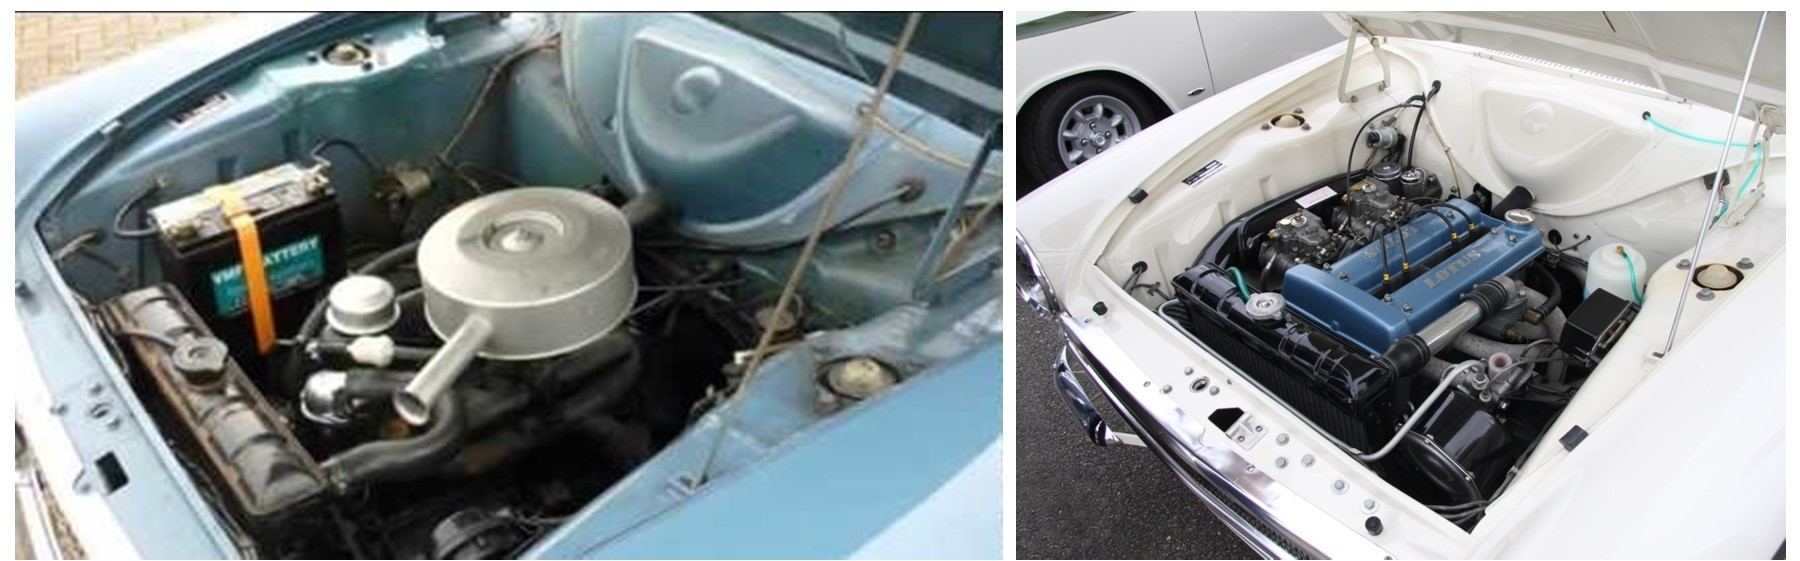 7. Engine Bay Collage